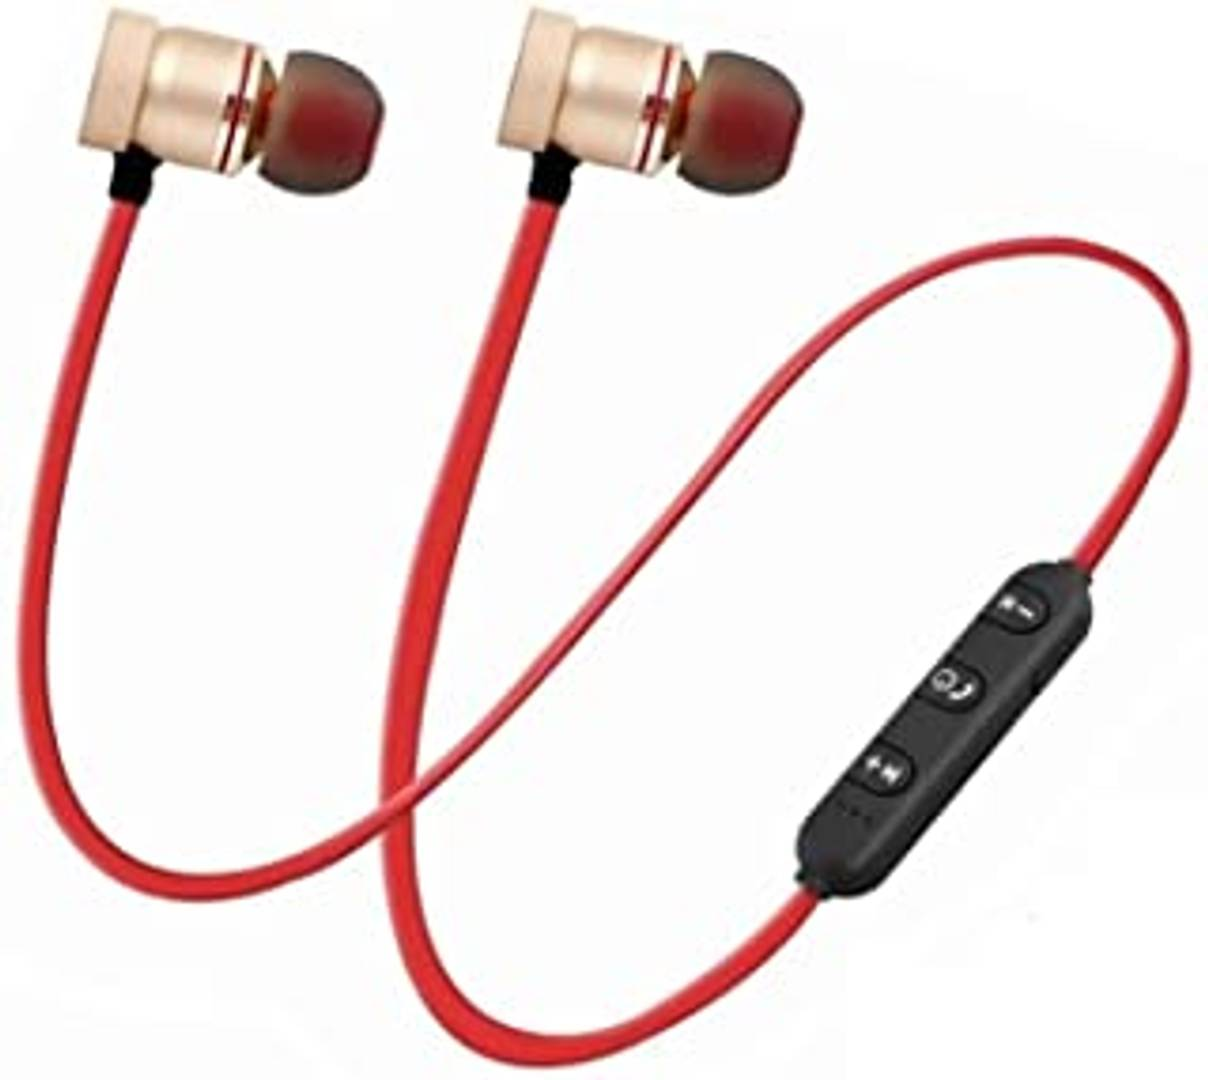 Bluetooth Wireless Headphone Sport Stereo Magnet Earbuds with Microphone Earphone for All Smartphones